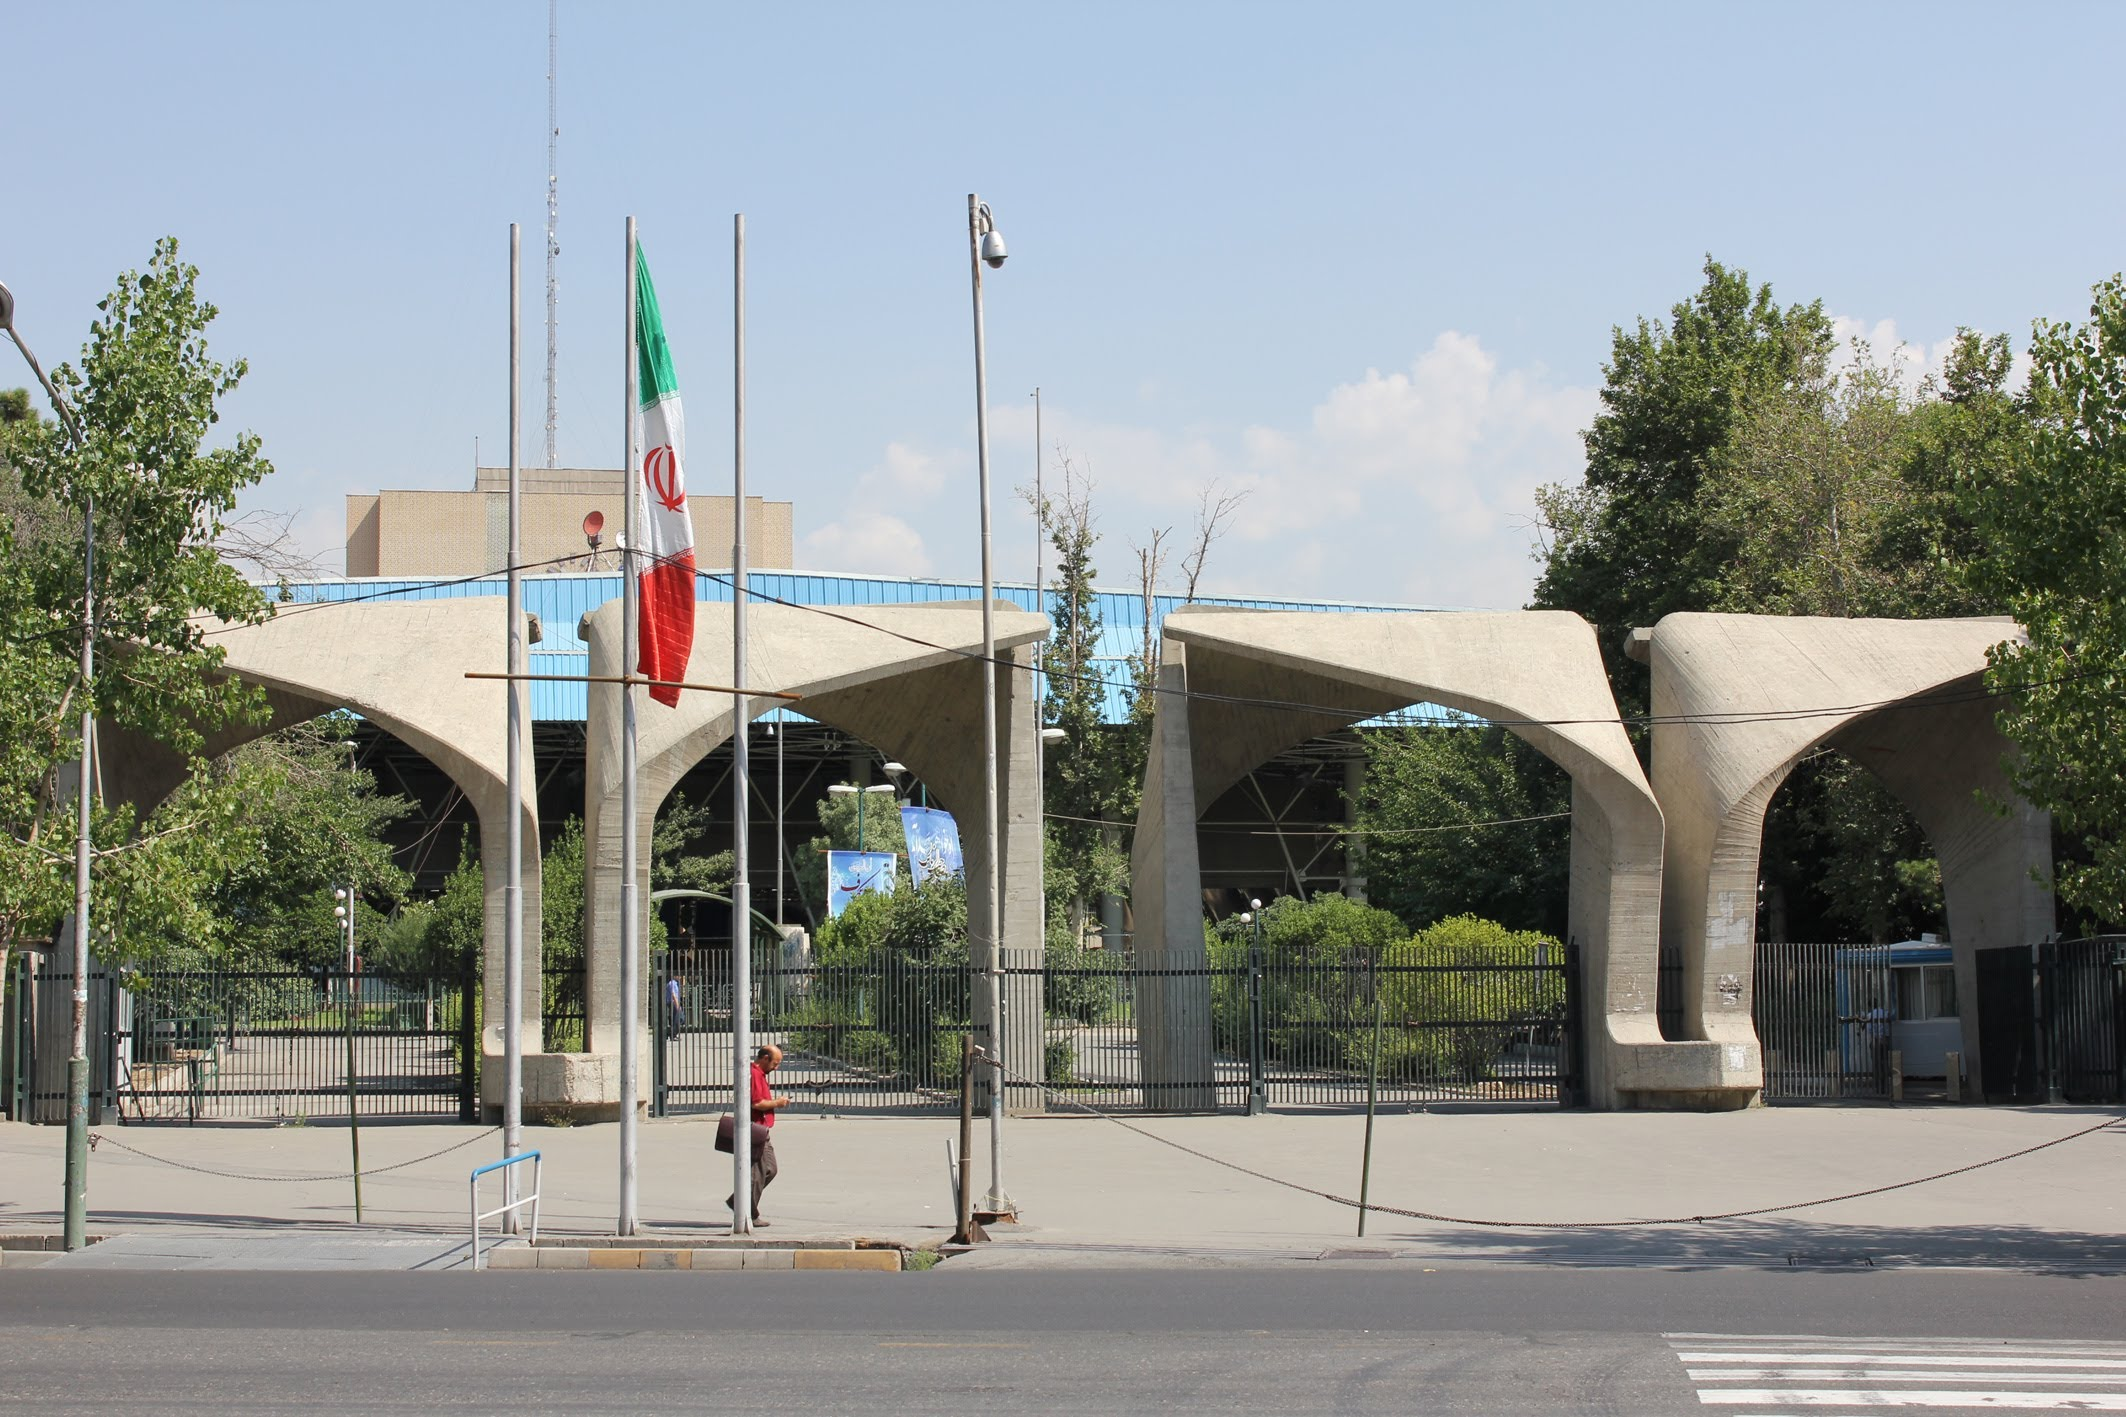 Tehran University Tehran, University of Tehran Iran - View of the famous entrance building ...